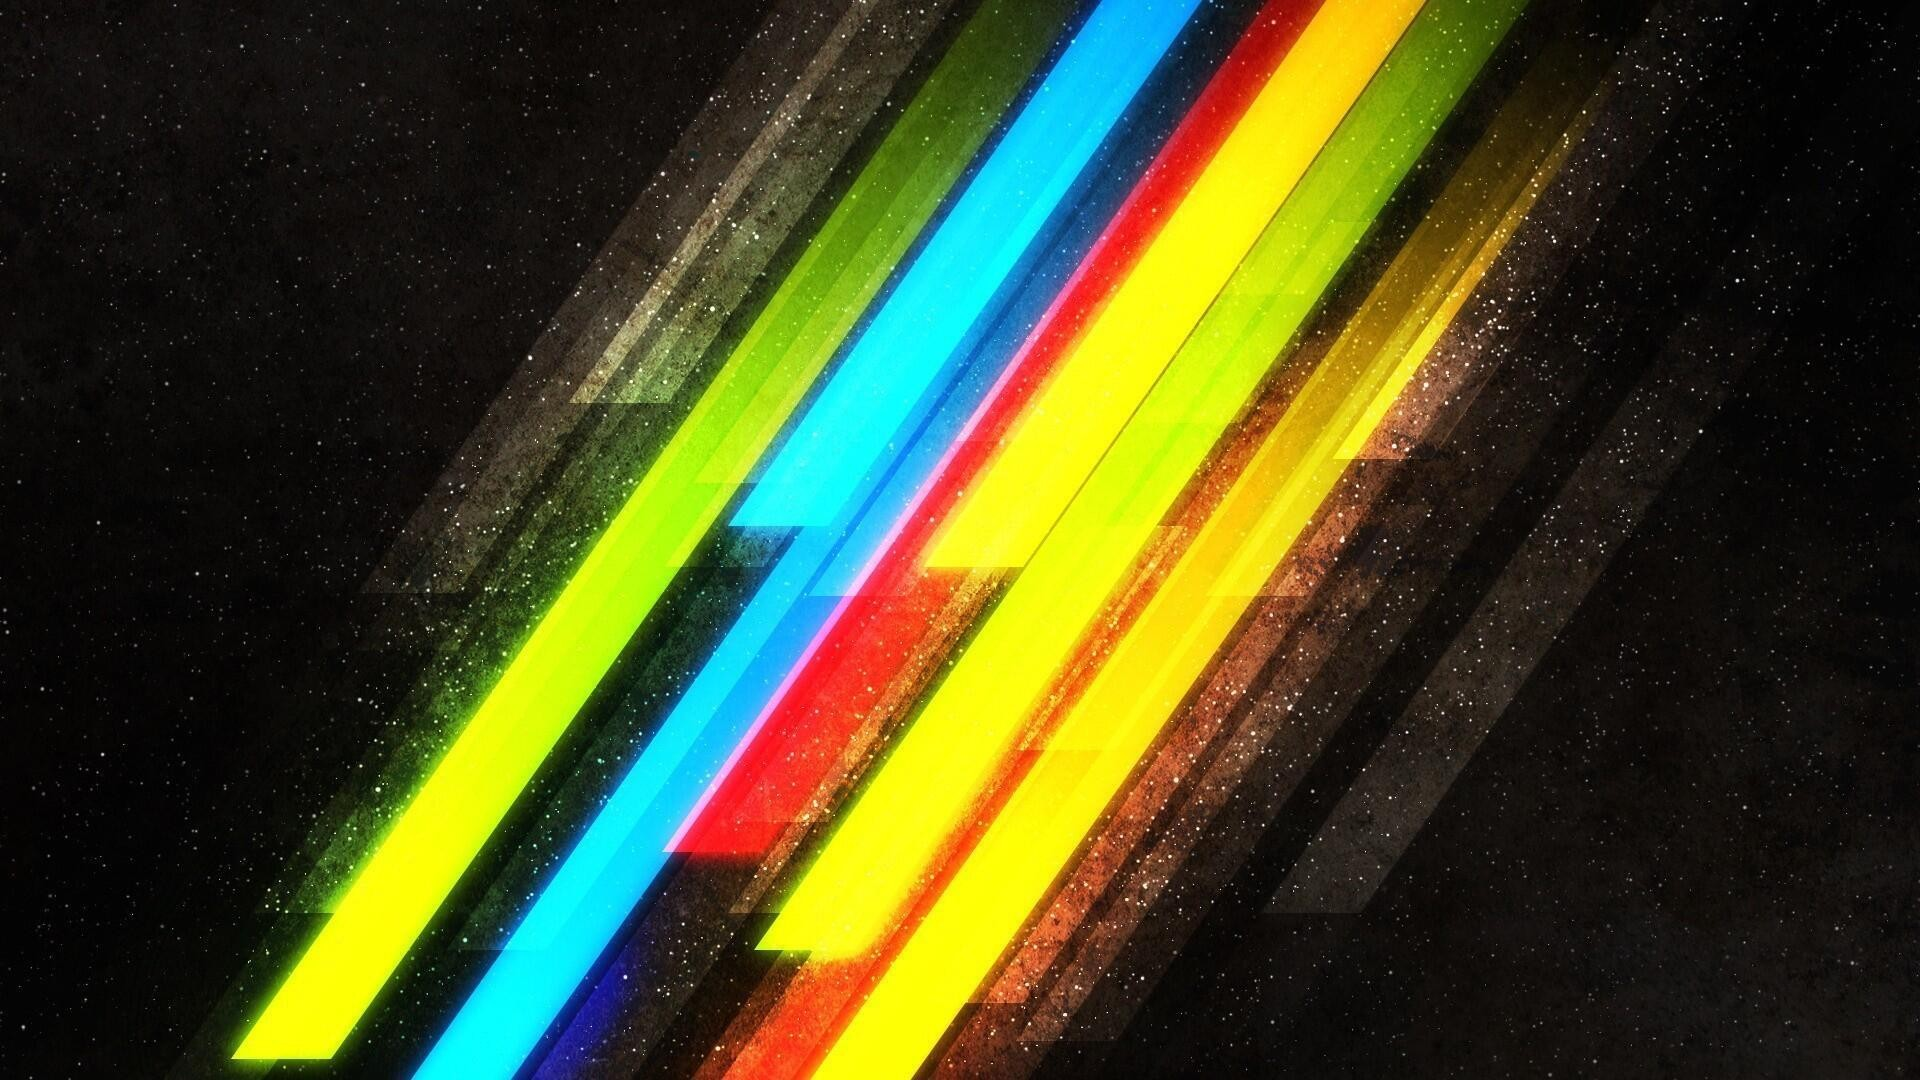 Wallpaper Sunlight Black Abstract Red Green Yellow